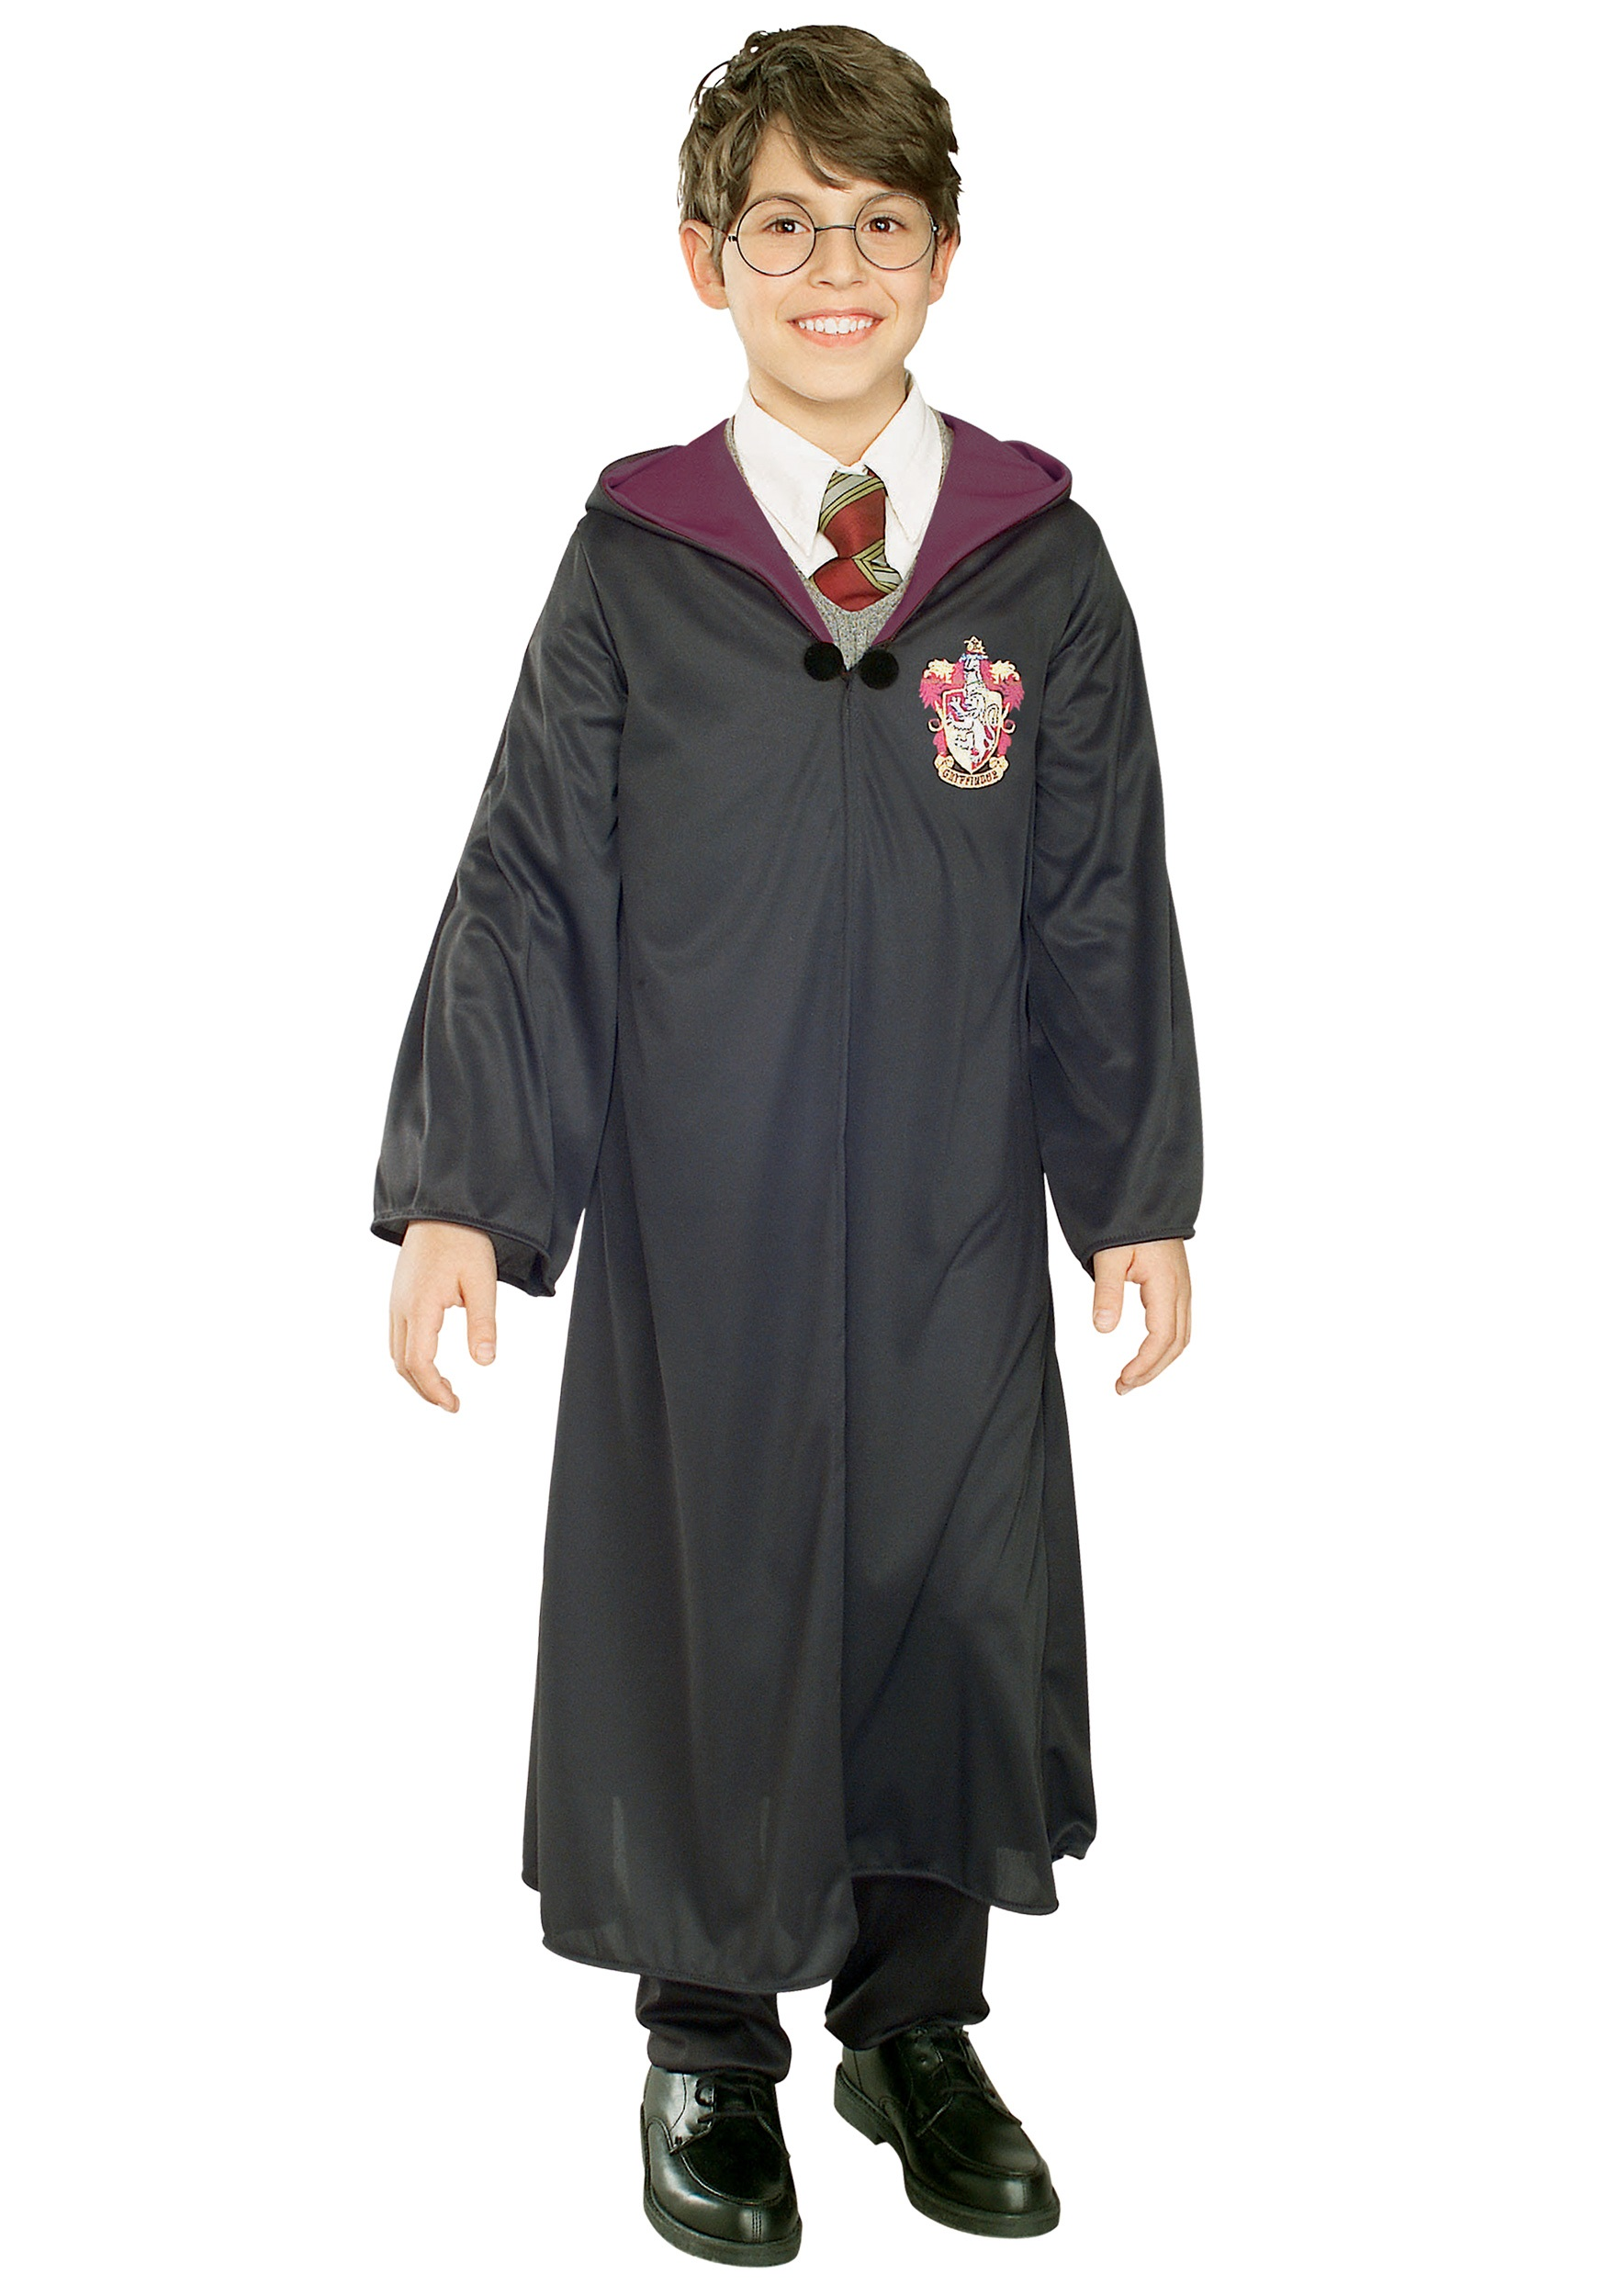 Child Harry Potter Costume - Kidu0026#39;s Harry Potter Costumes